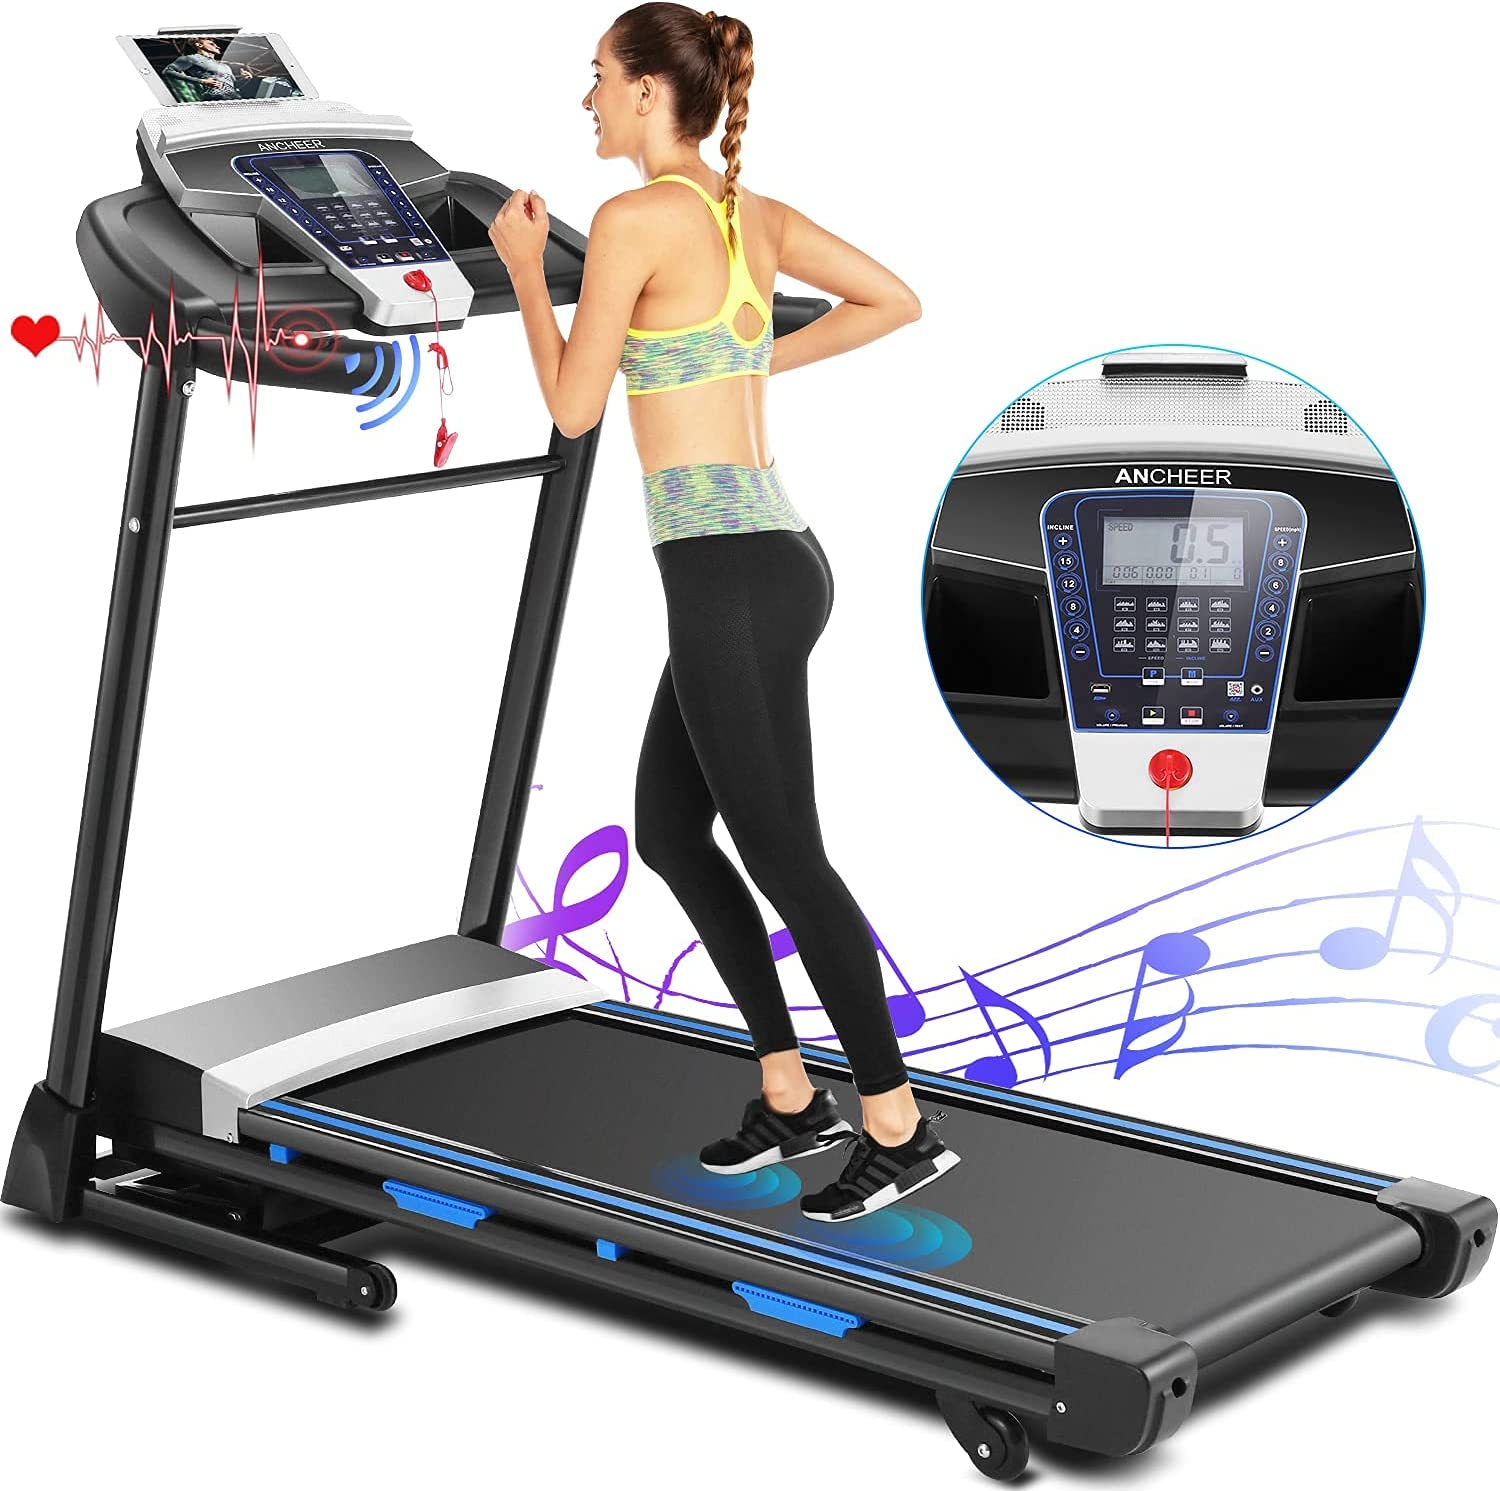 ANCHEER Treadmill,Treadmills for Home with Automatic Incline,3.25HP APP Control Folding Treadmills Exercise Machines,Running&Walking Electric fold Treadmill for Gym&Office Workout Cardio Use